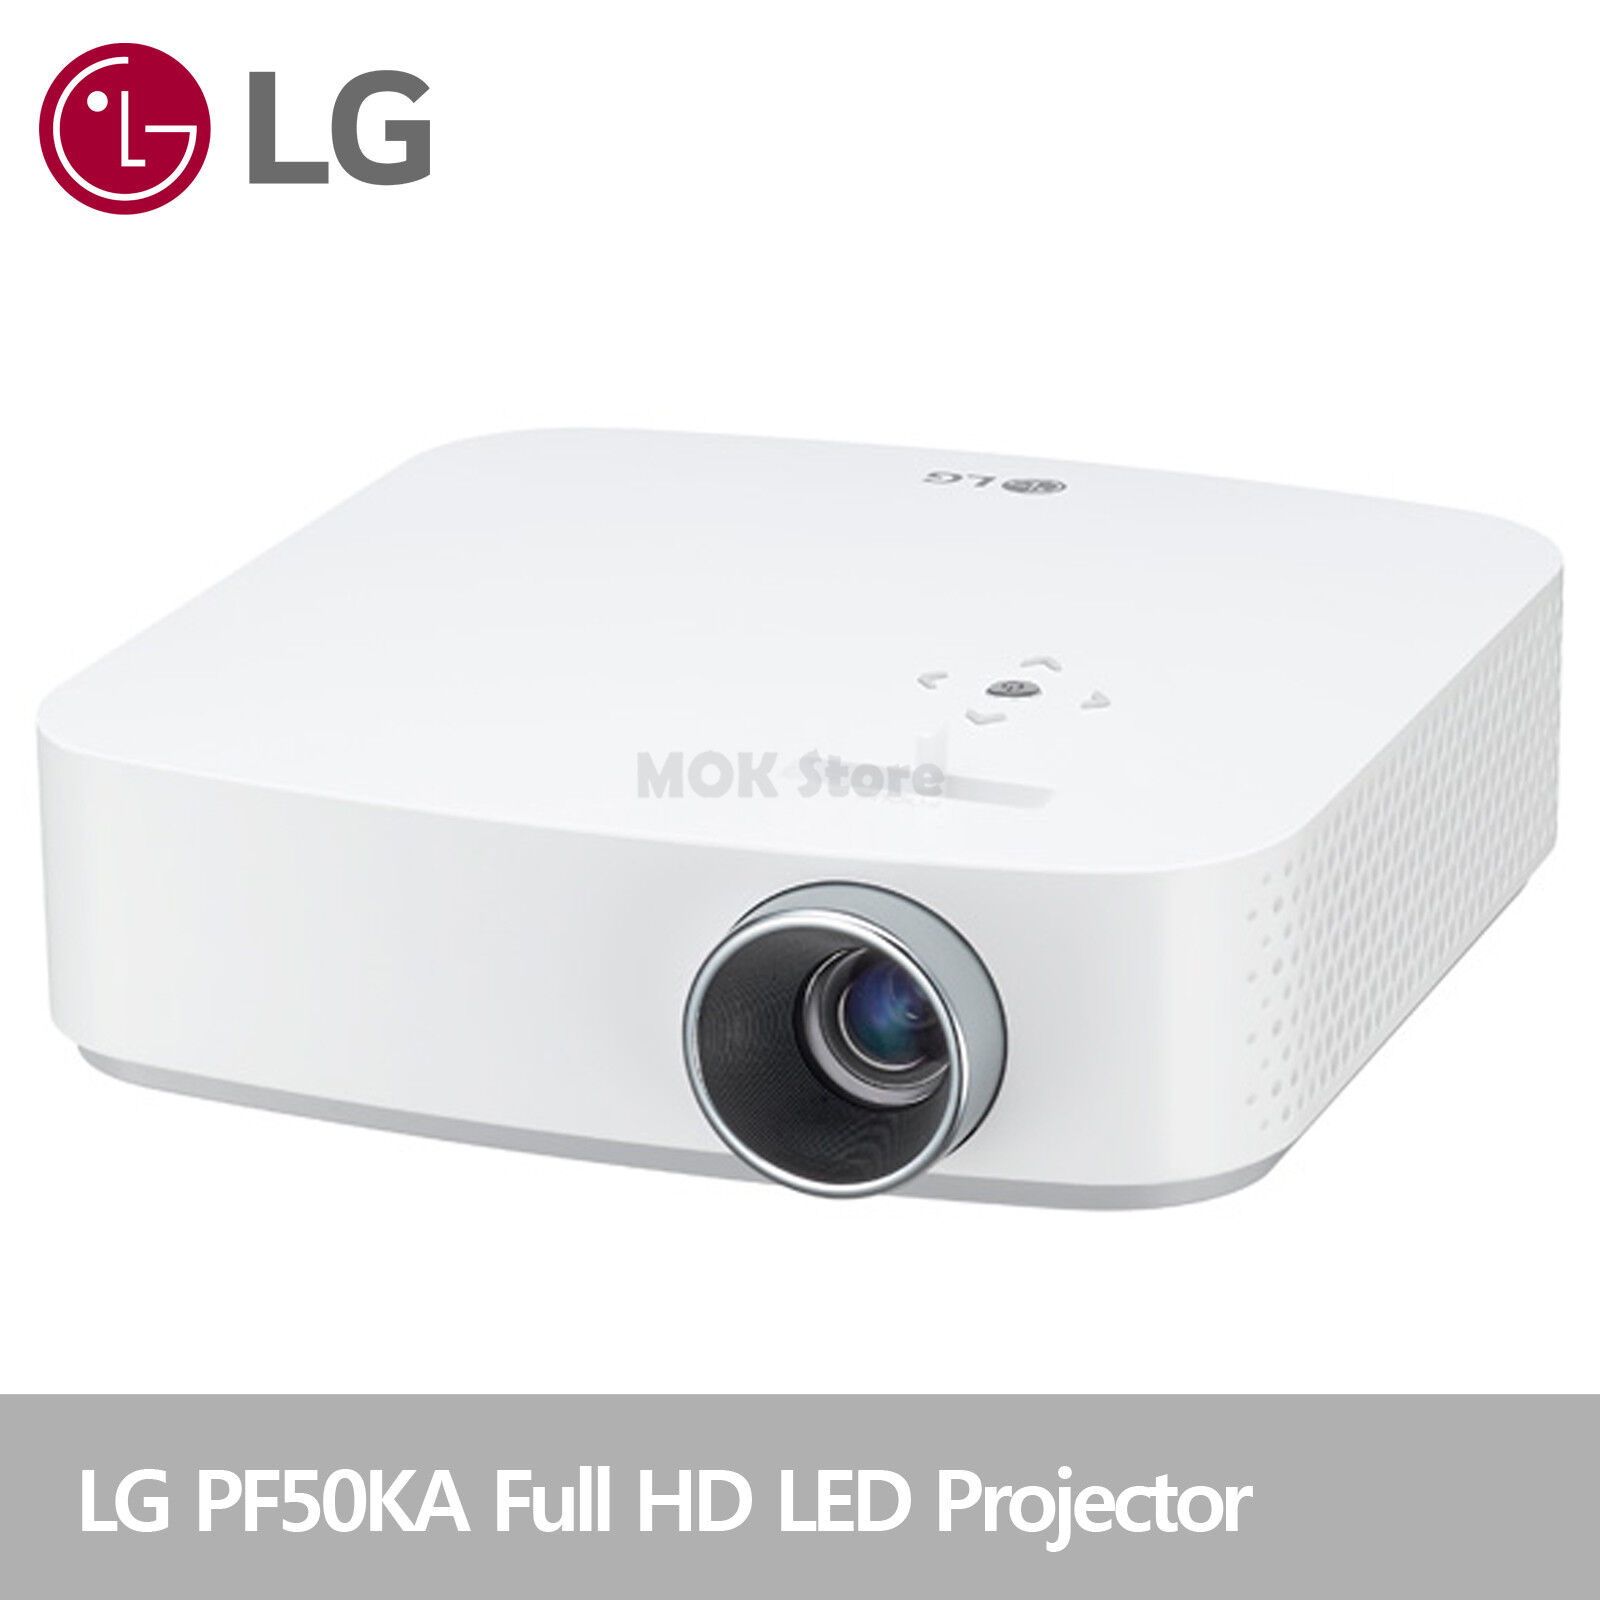 LG PF50KA Full HD LED Smart Home Theater Projector (1920 X